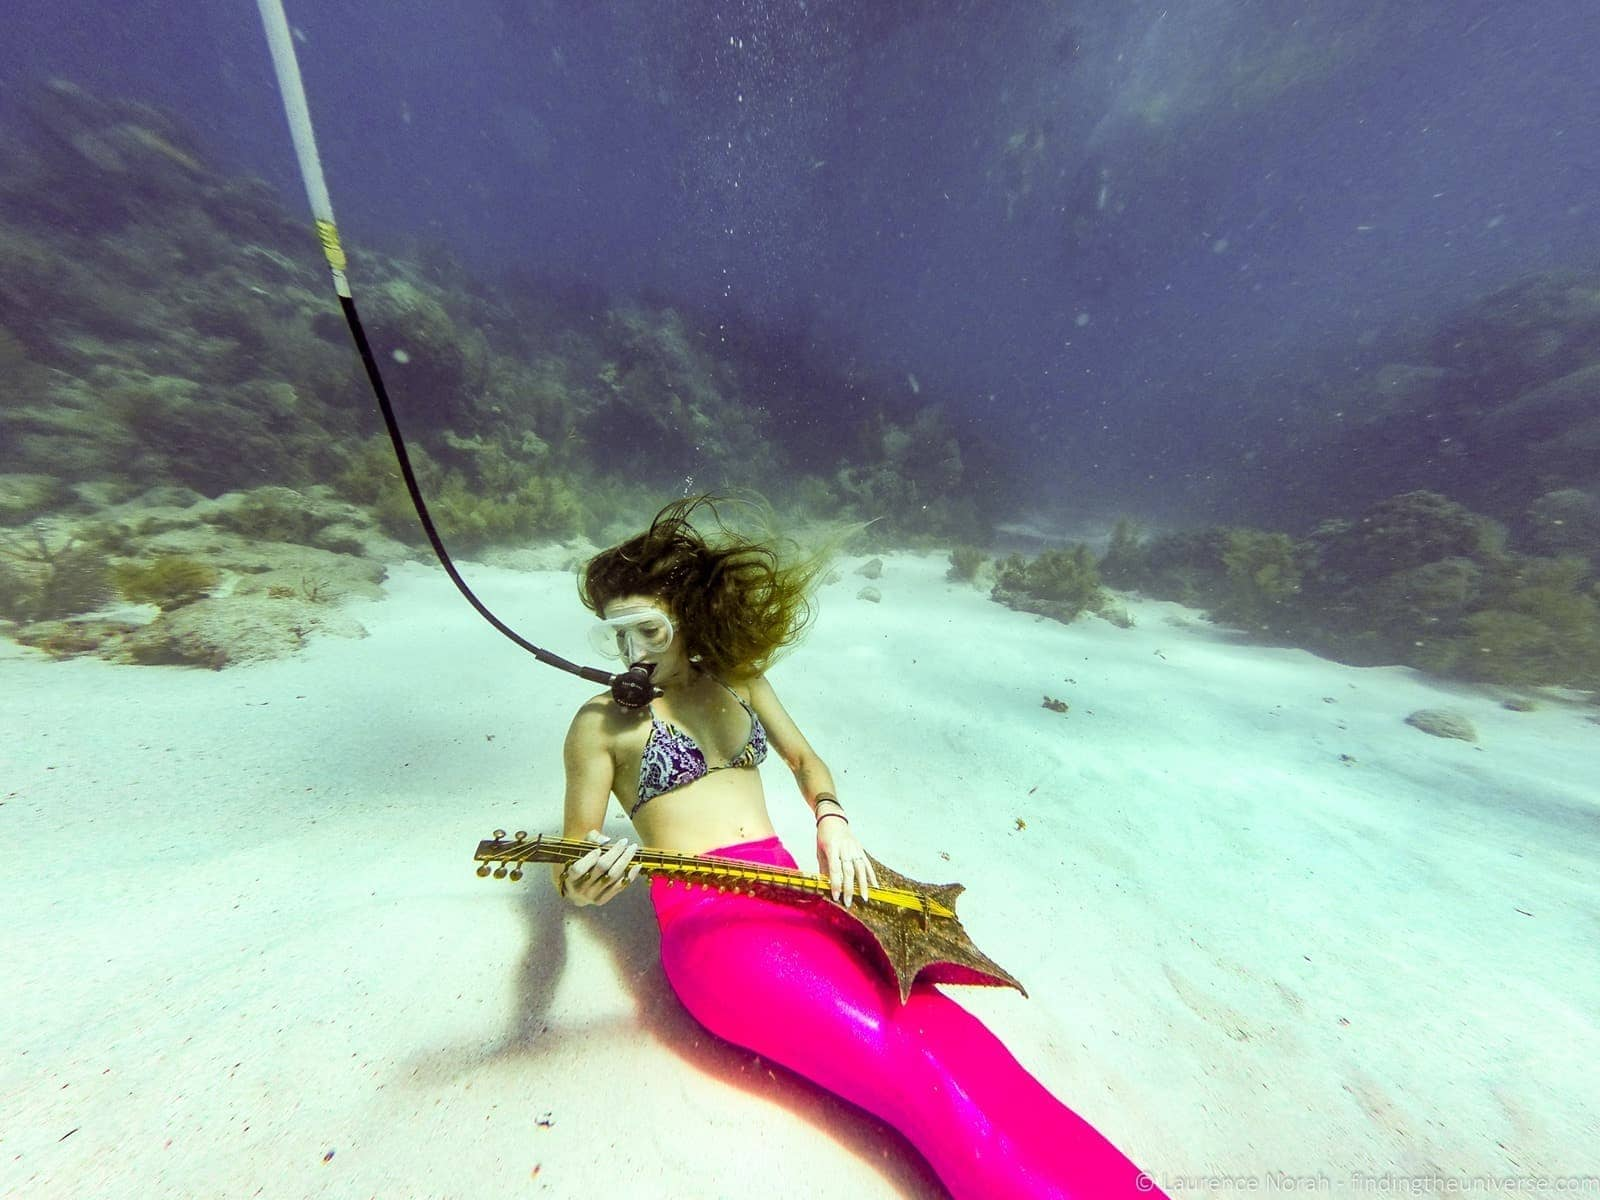 Mermaid underwater festival florida keys